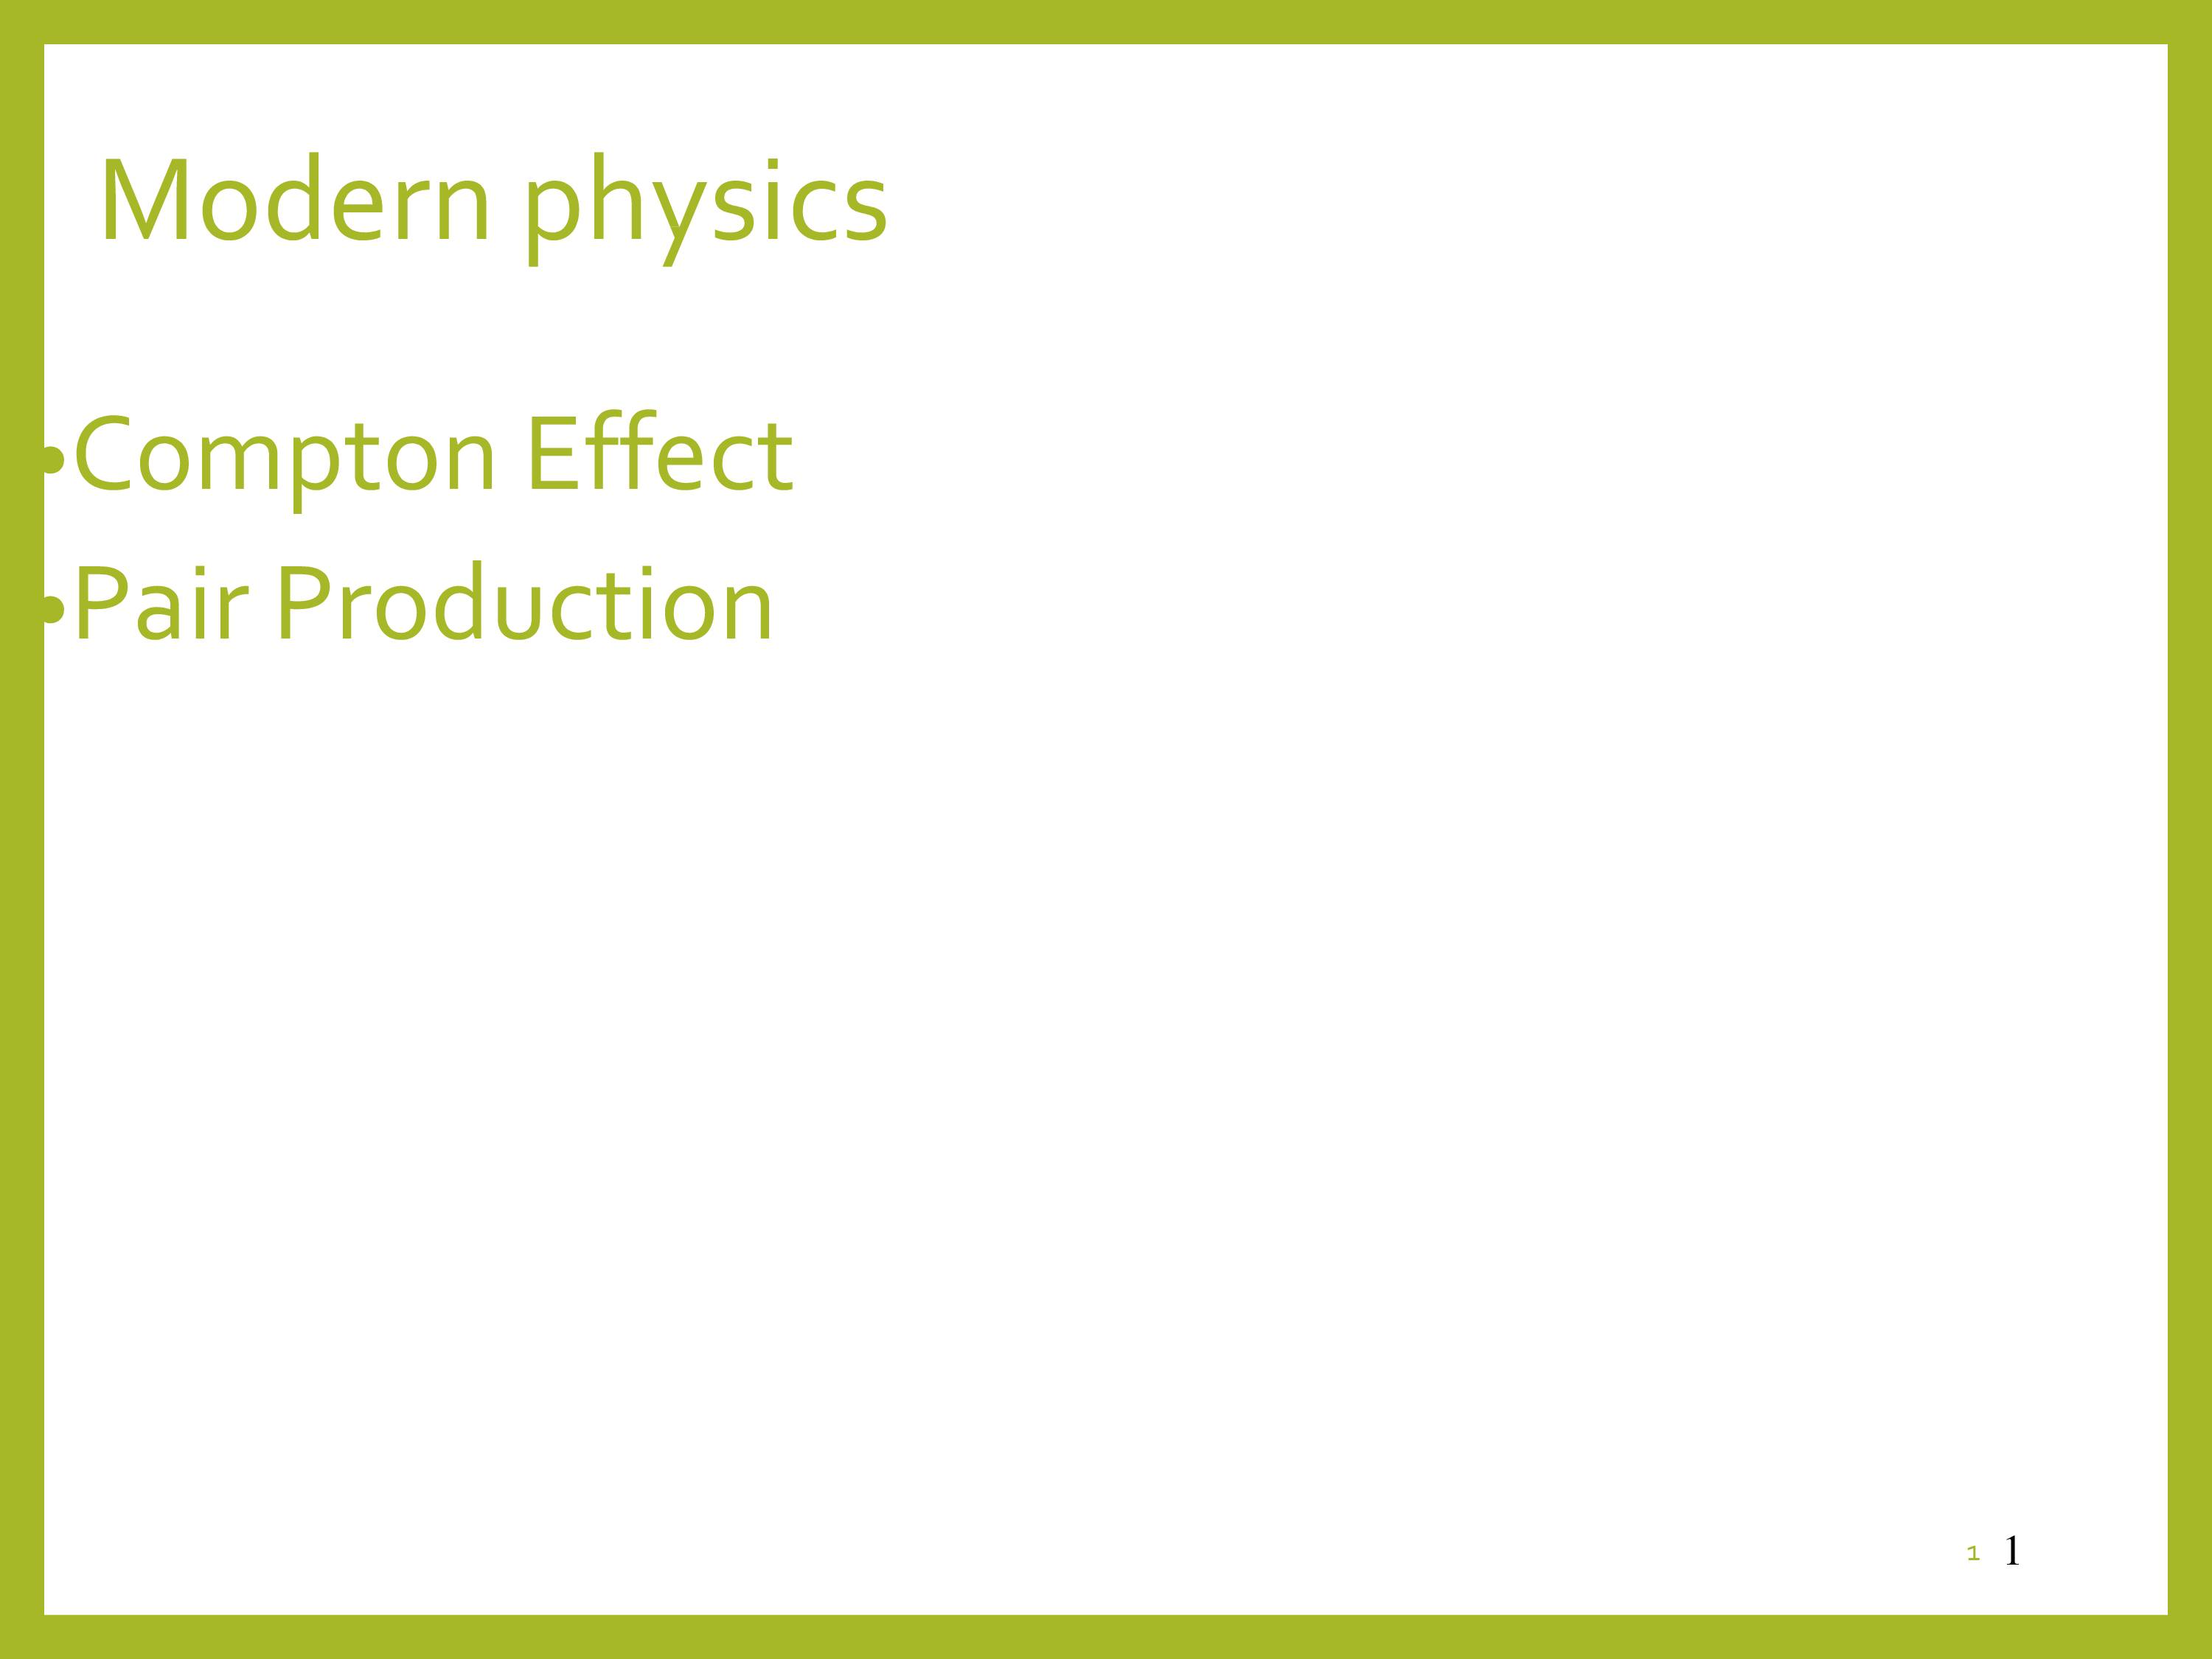 Compton Effect And Pair Production-Modern Physics